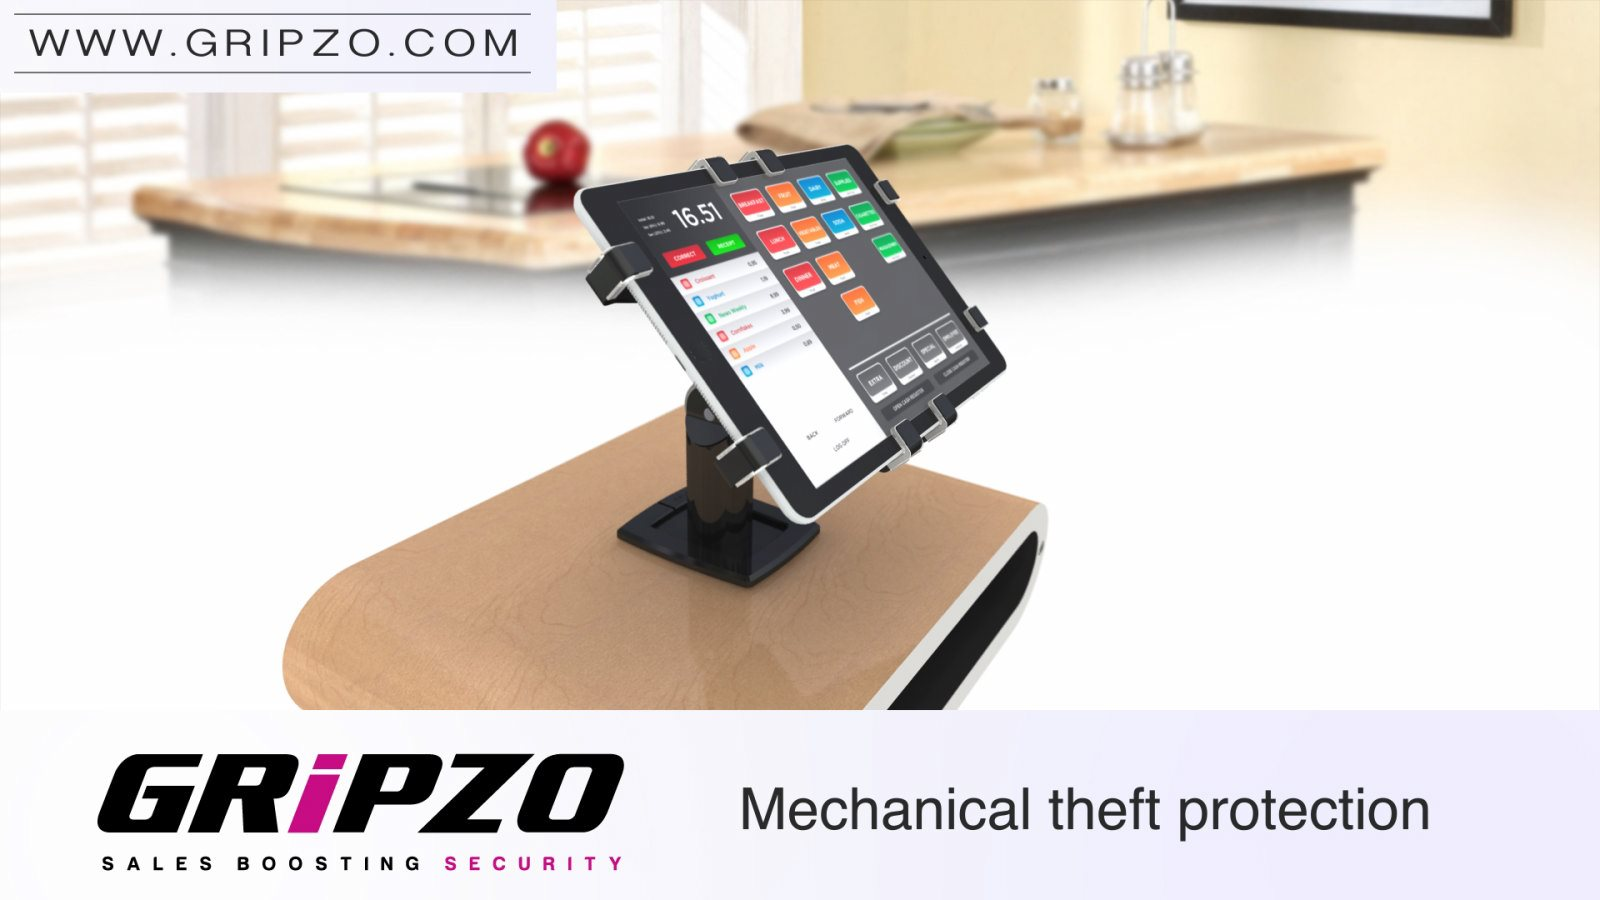 gripzo-security-fixture-image-0-00-07-21.jpg